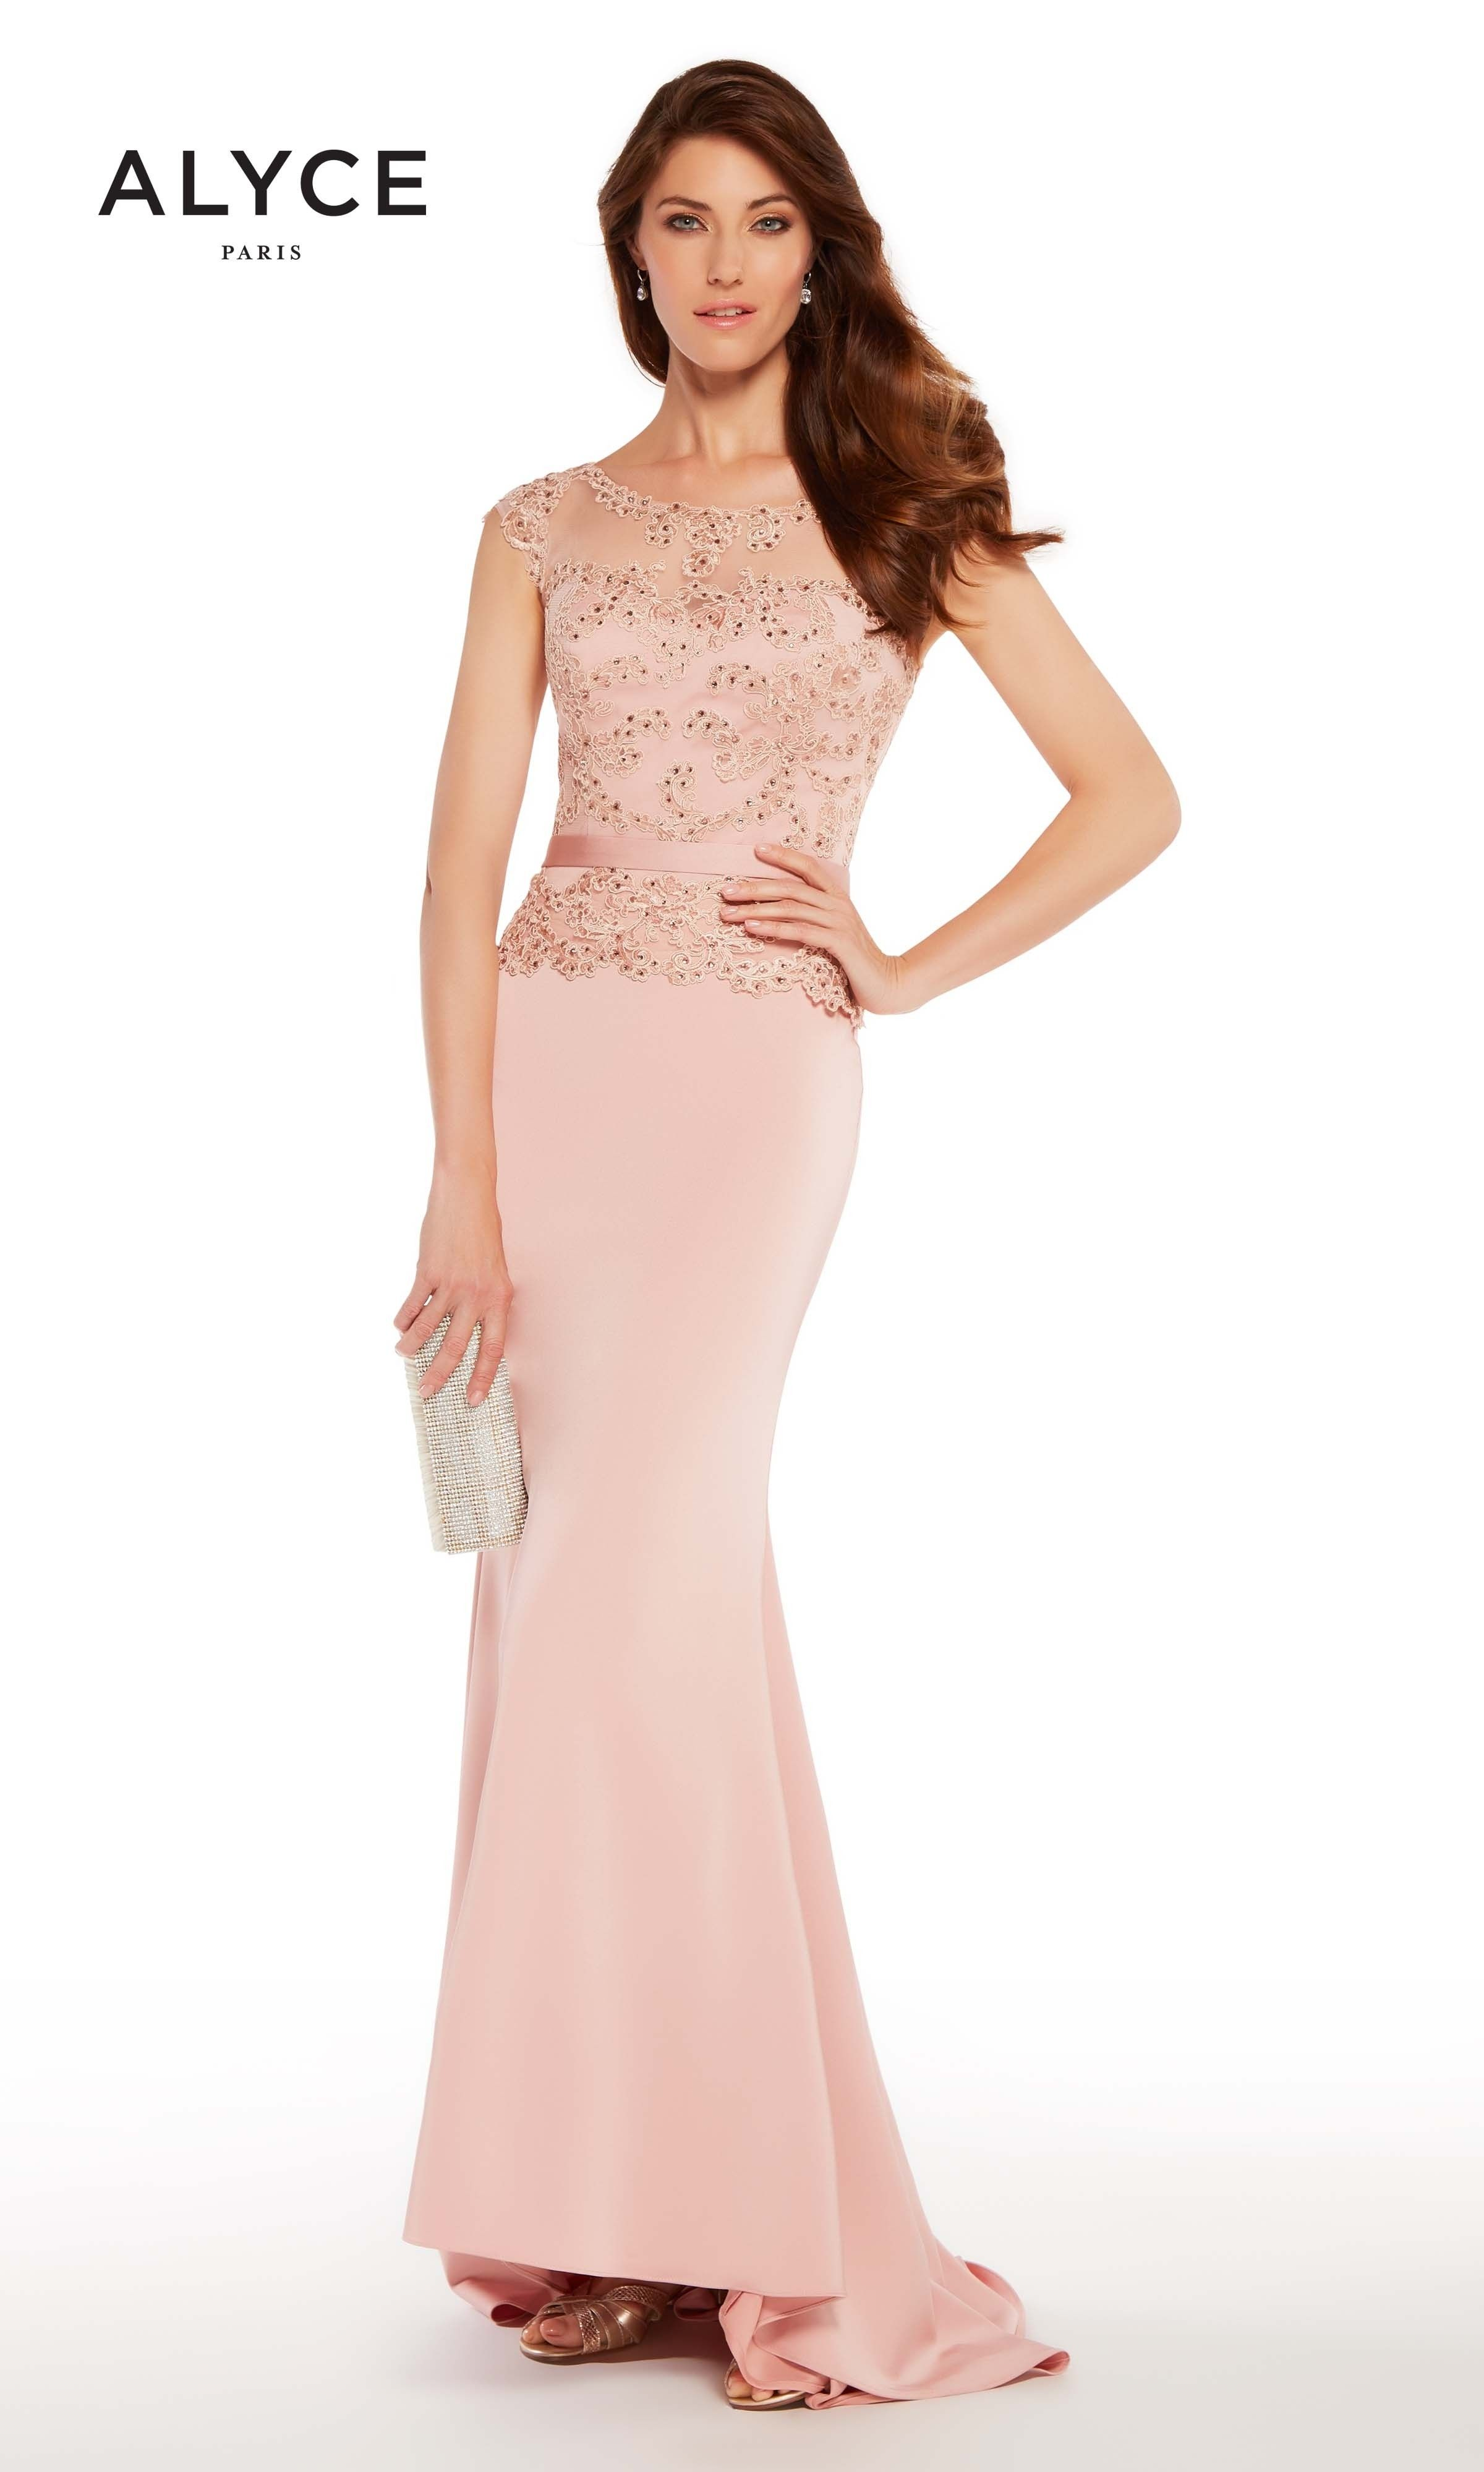 Alyce 27262 Long Gown with Jeweled Peplum Top | Pinterest ...